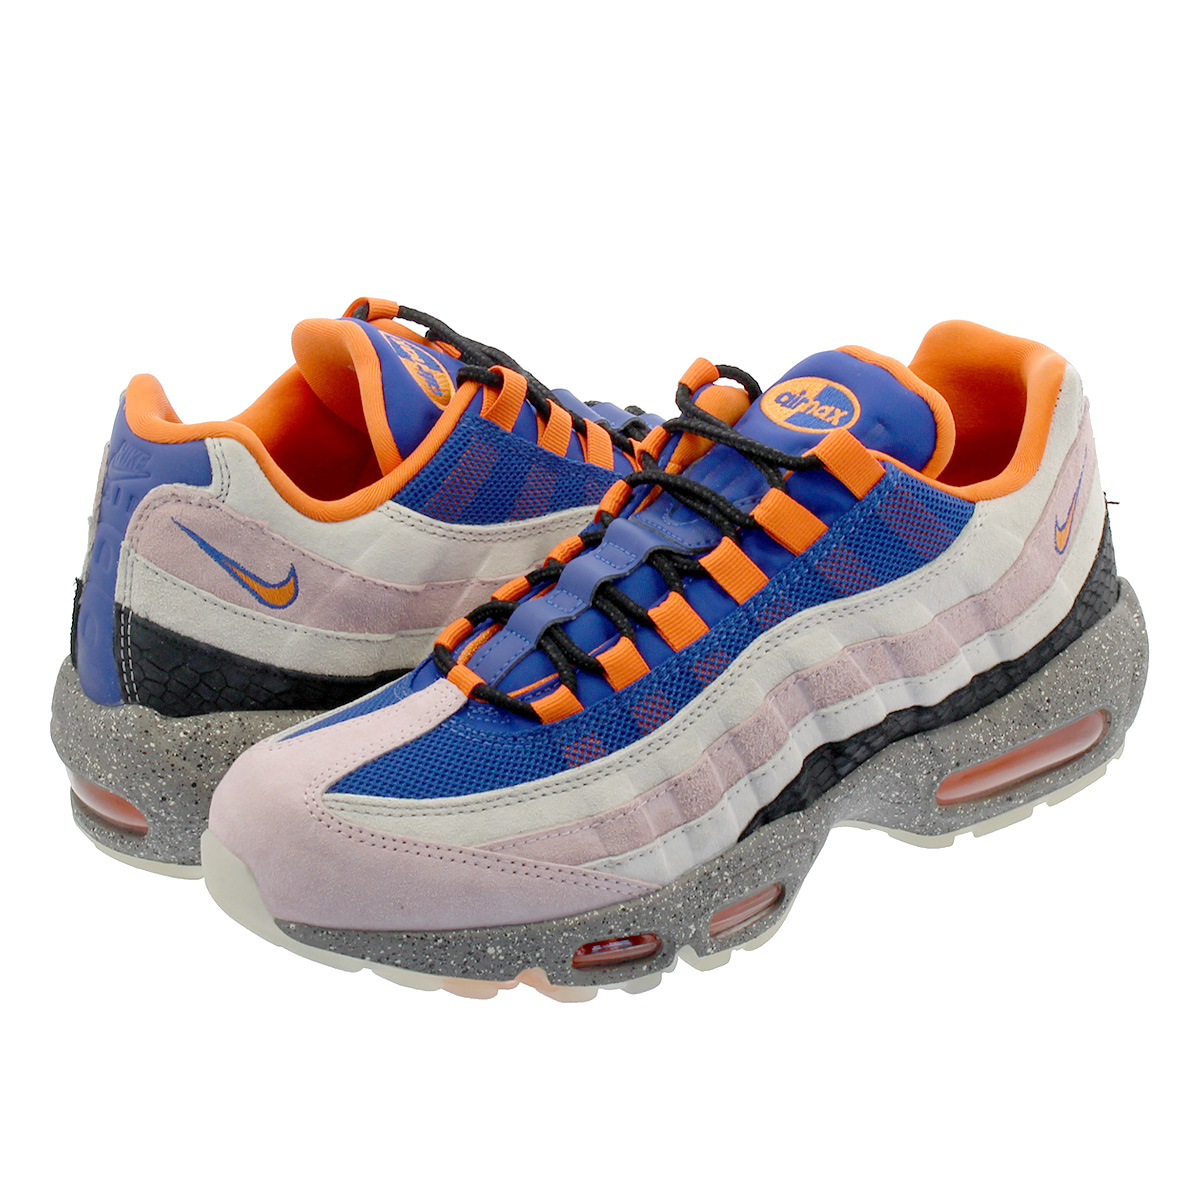 online store 0fae3 04a61 NIKE AIR MAX 95 Kie Ney AMAX 95 CHAMPAGNE/SAFETY ORANGE/SPORT ROYAL  av7014-600